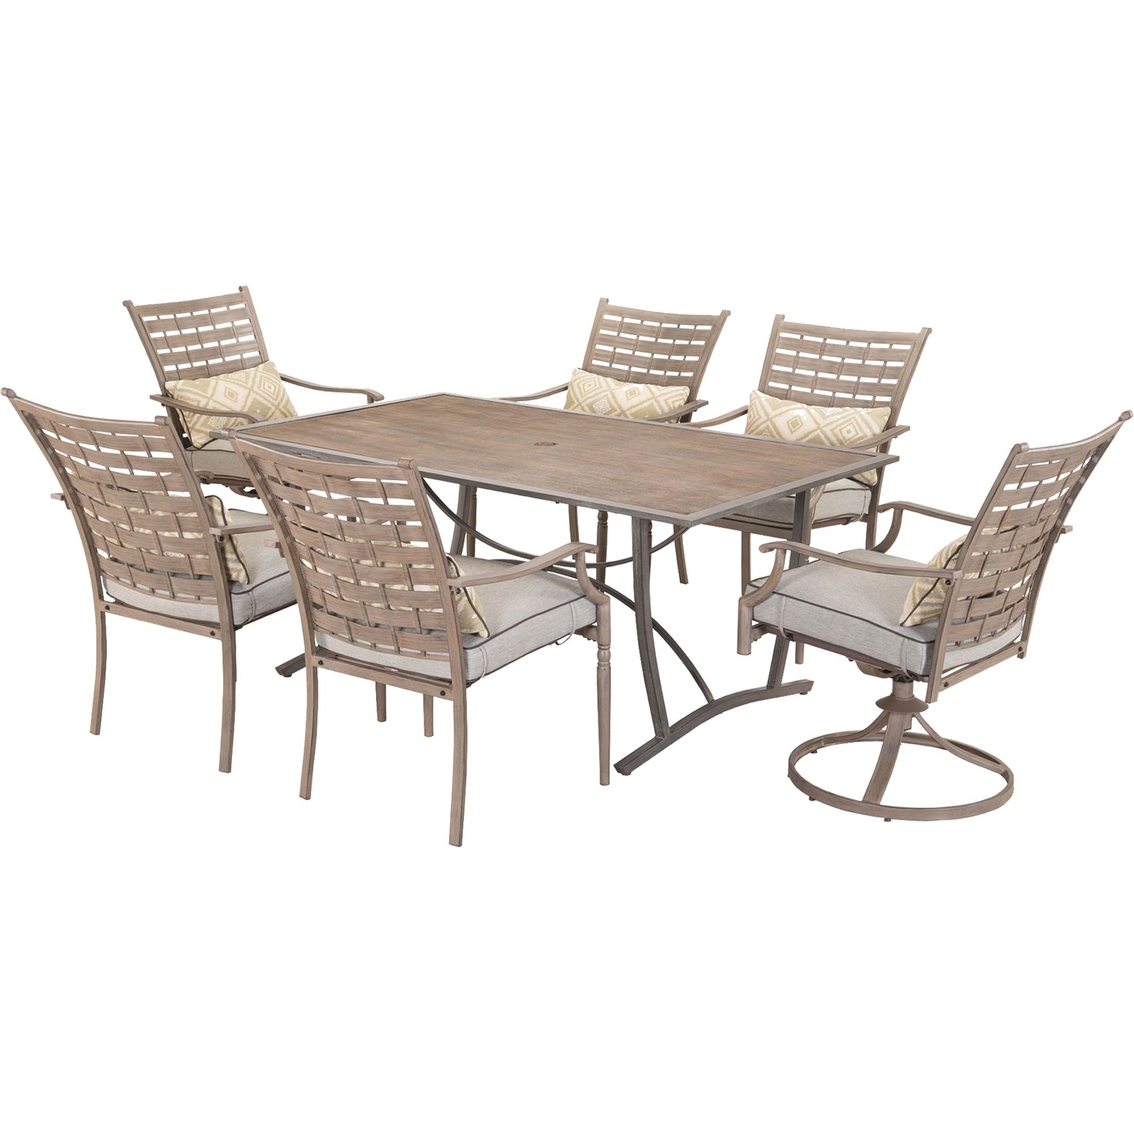 Courtyard Creations Melrosa 7 Pc. Hand Painted Dining Set